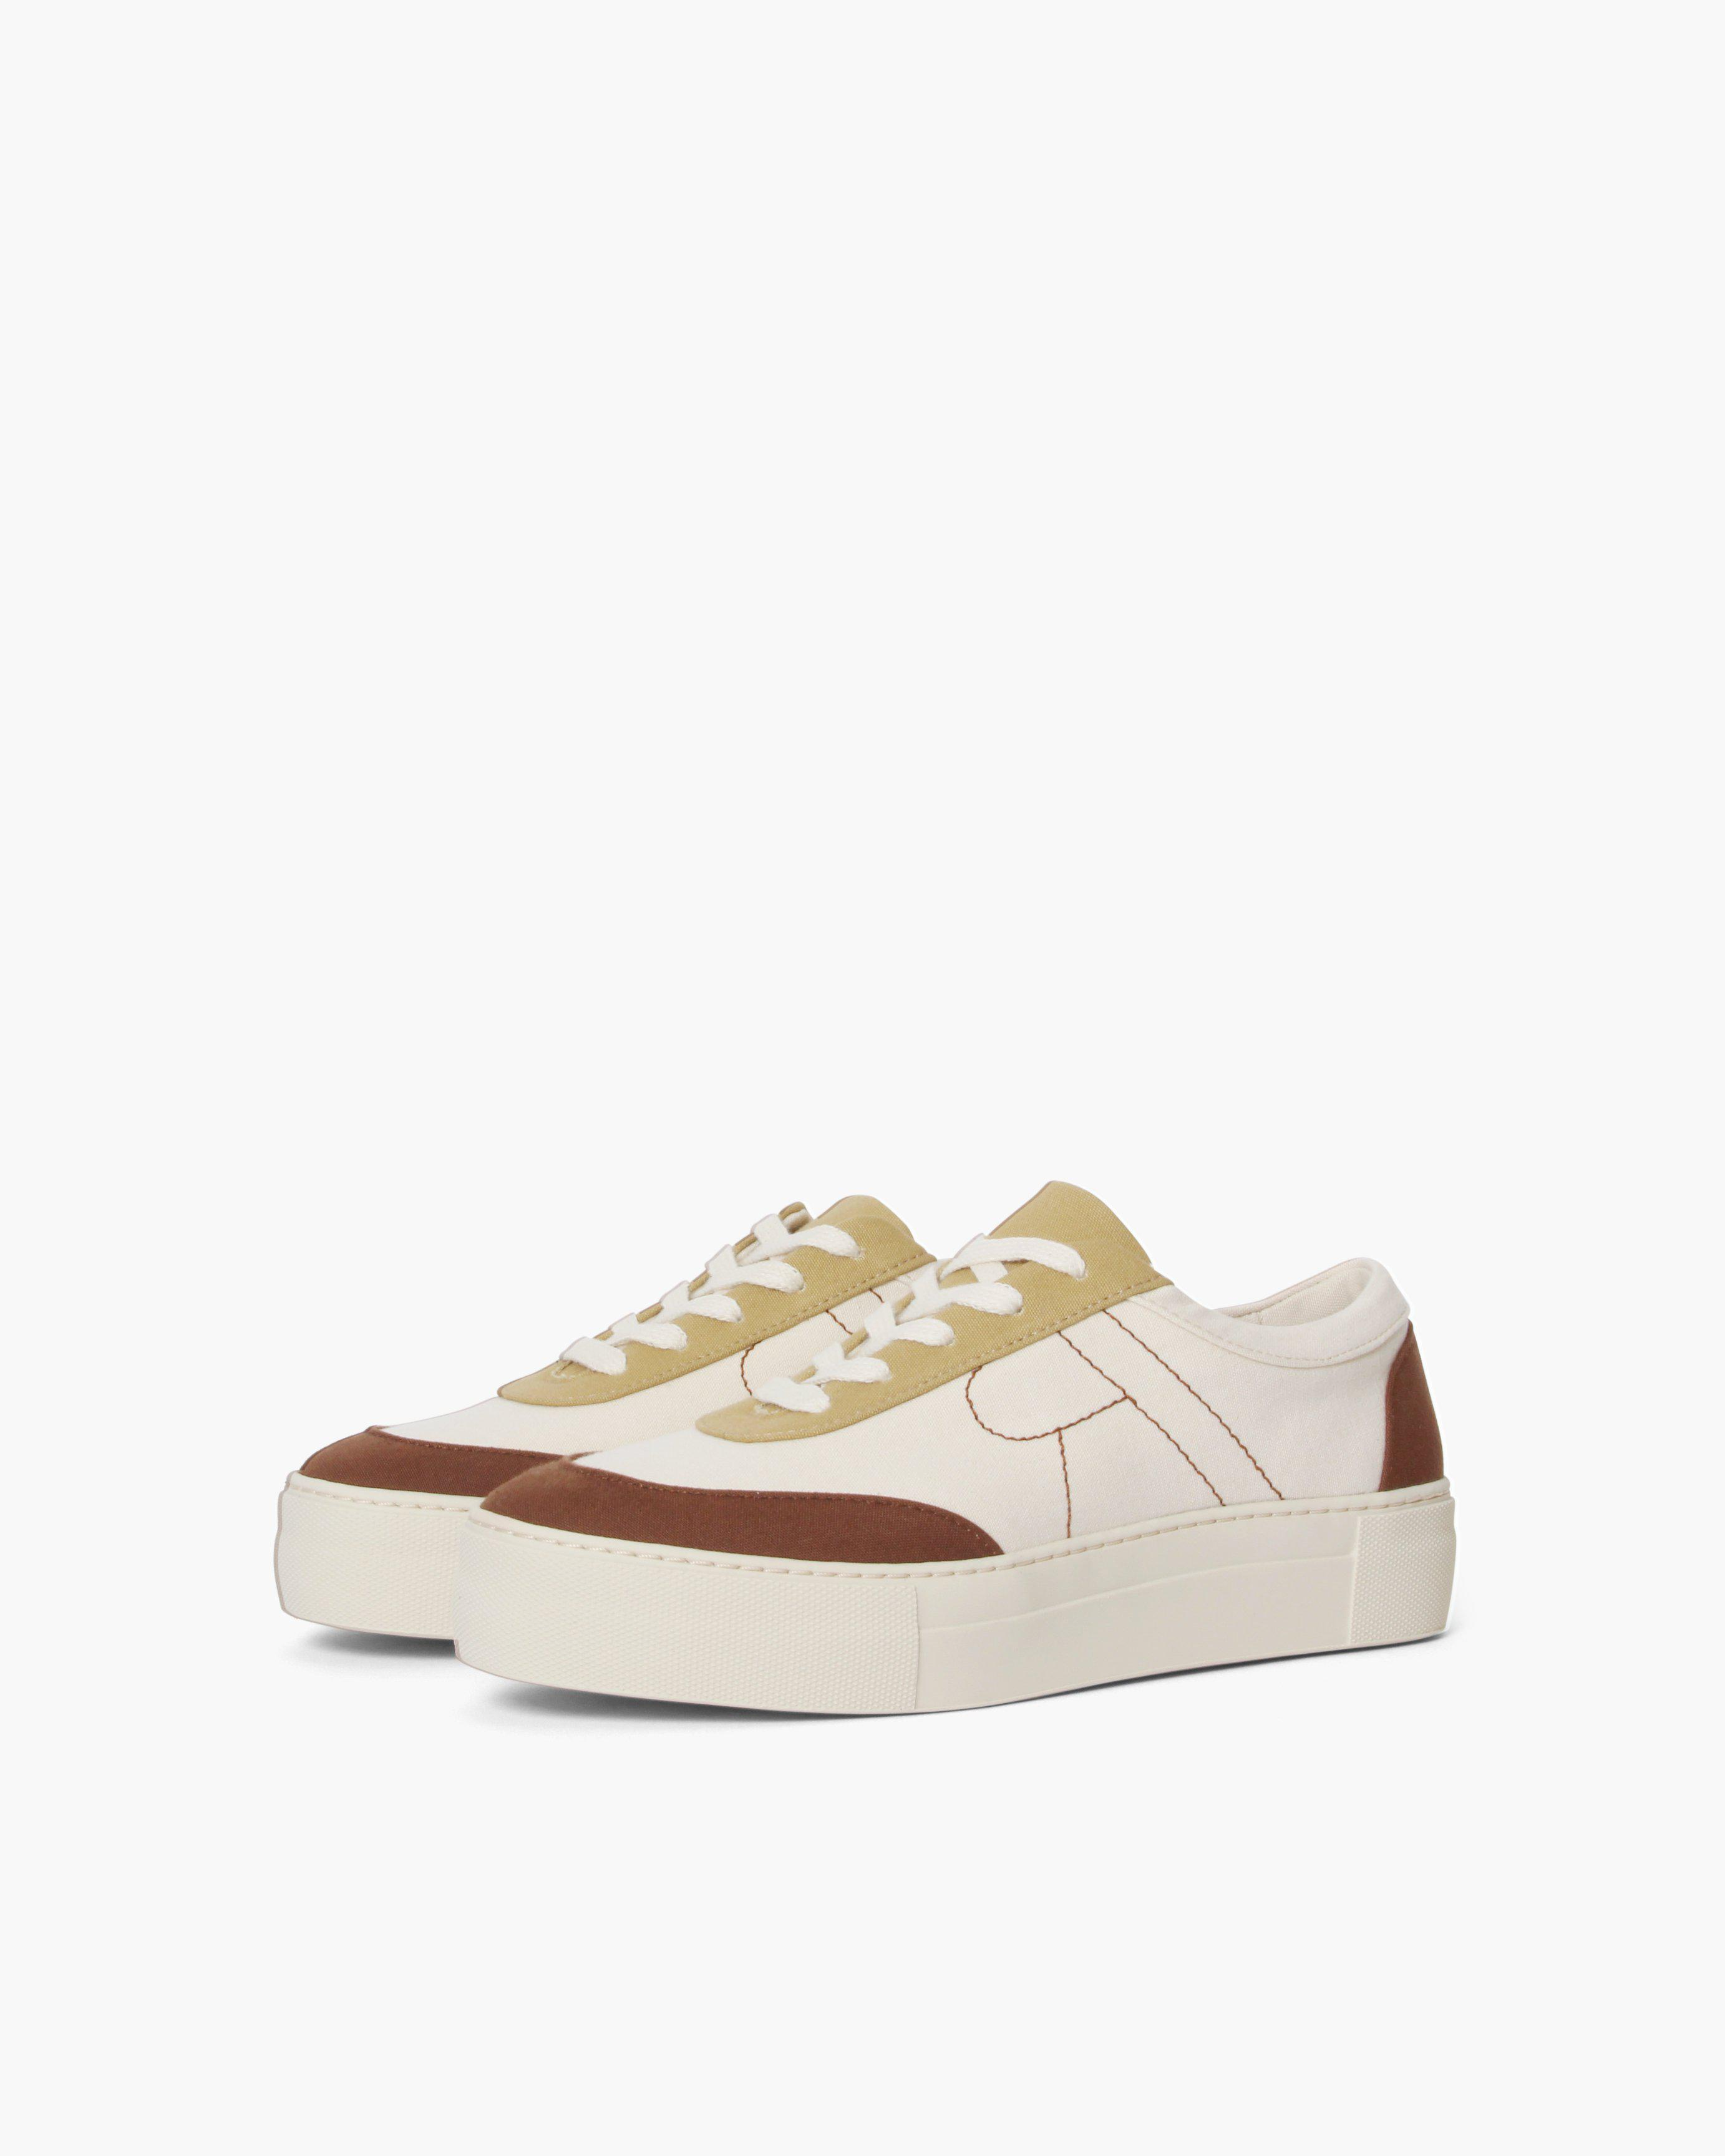 Bailey Sneakers Cotton Canvas Coffee - SALE 1